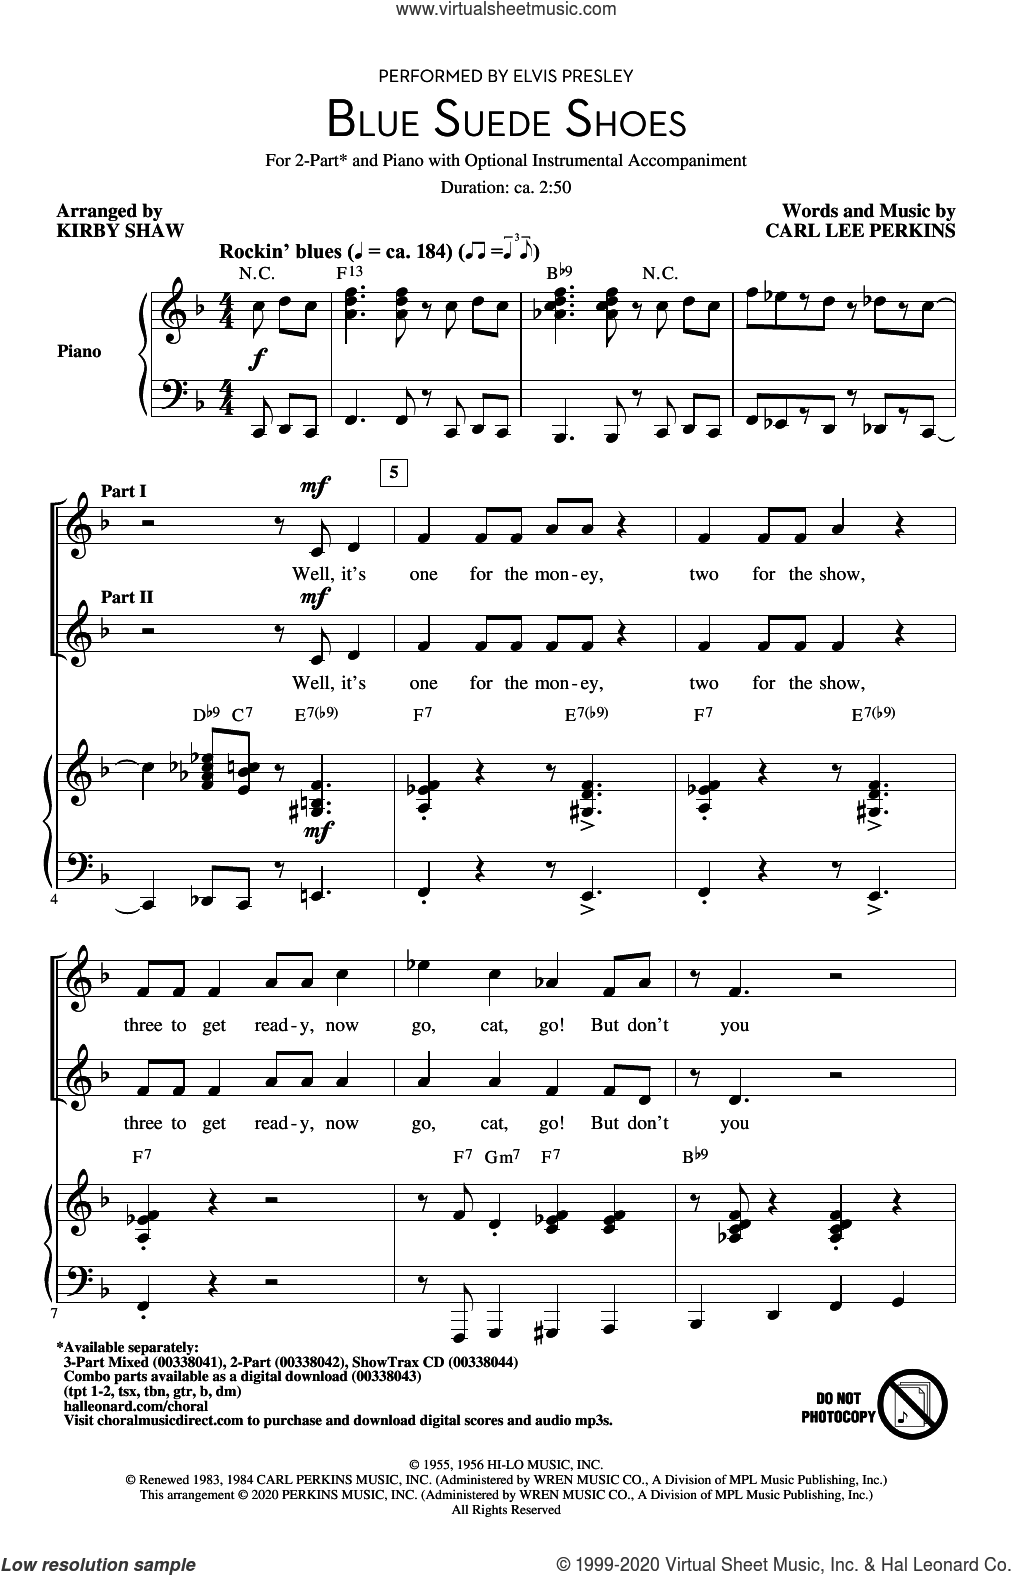 Blue Suede Shoes (arr. Kirby Shaw) sheet music for choir (2-Part) by Elvis Presley, Kirby Shaw and Carl Perkins, intermediate duet